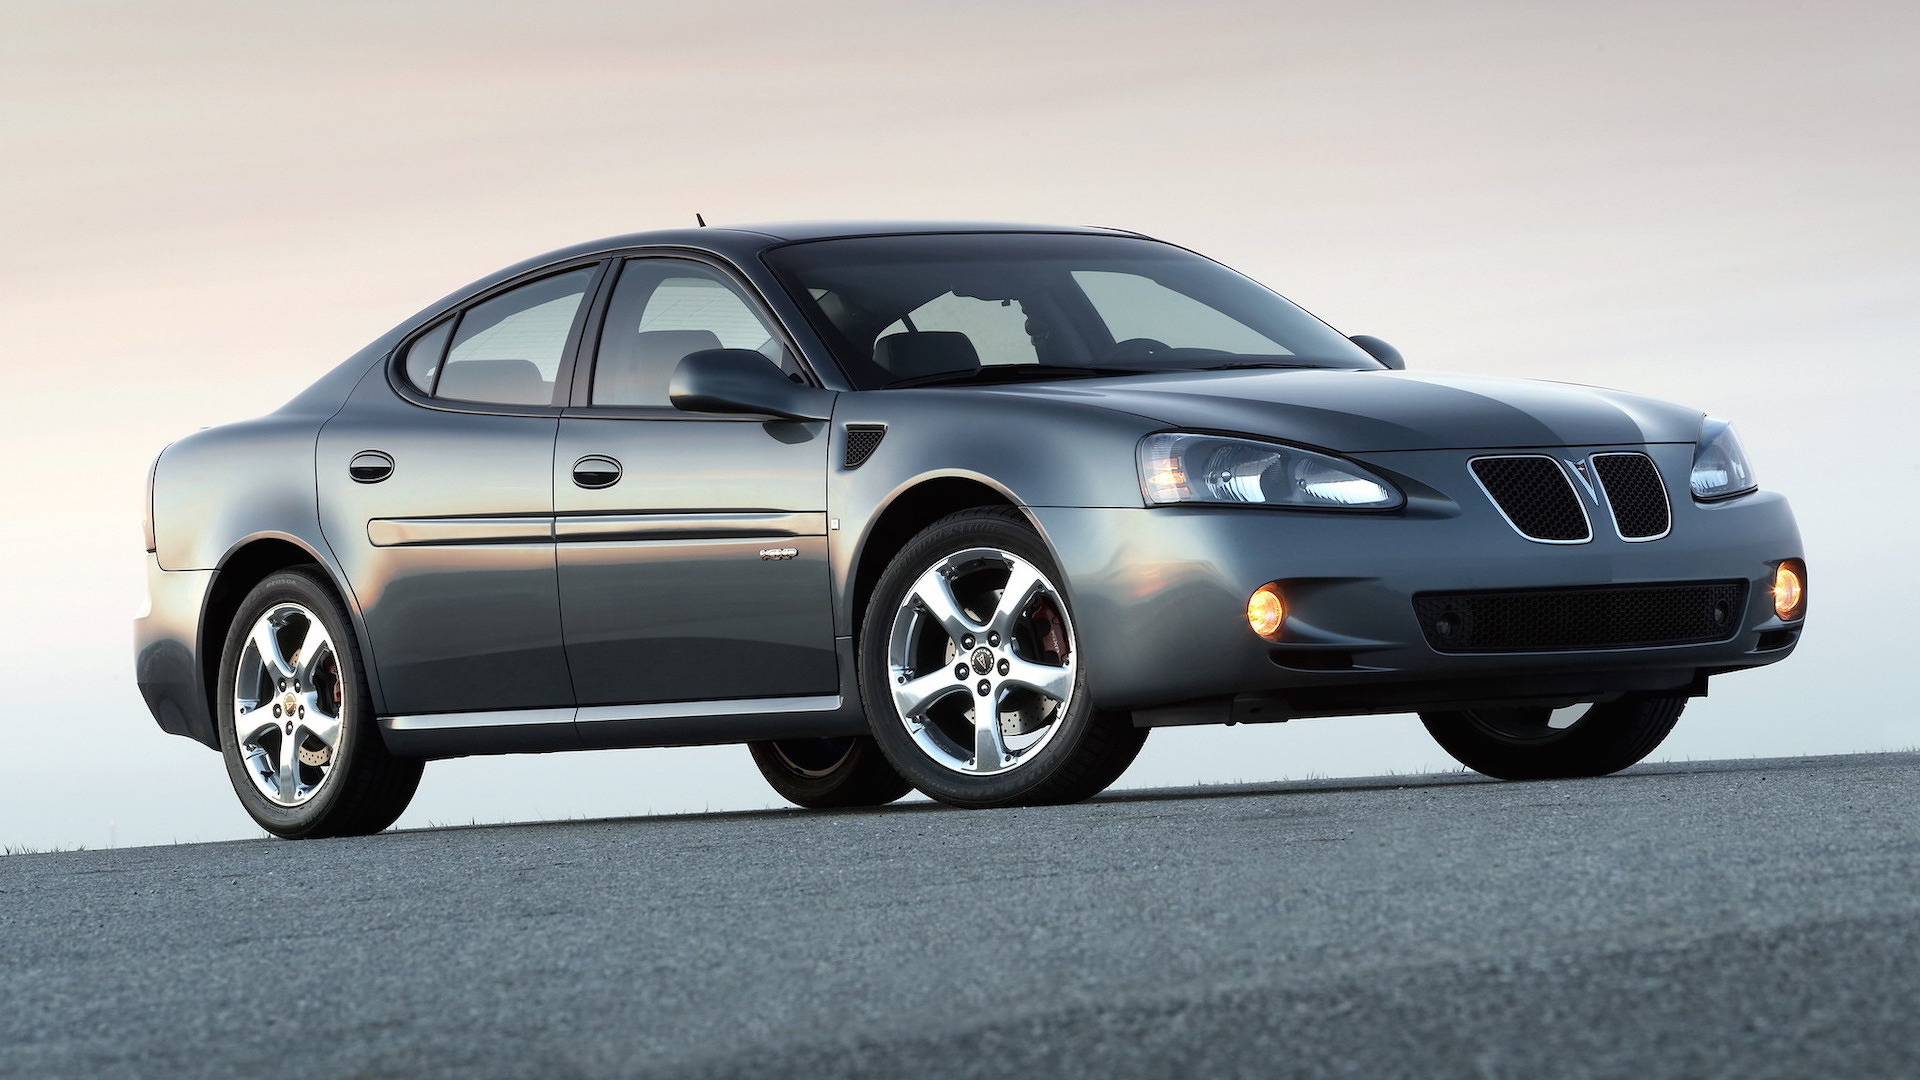 Sports Cars for Sale Near Me Under 10000 Elegant 300 Horsepower Cars You Can Snag for Under $10 000